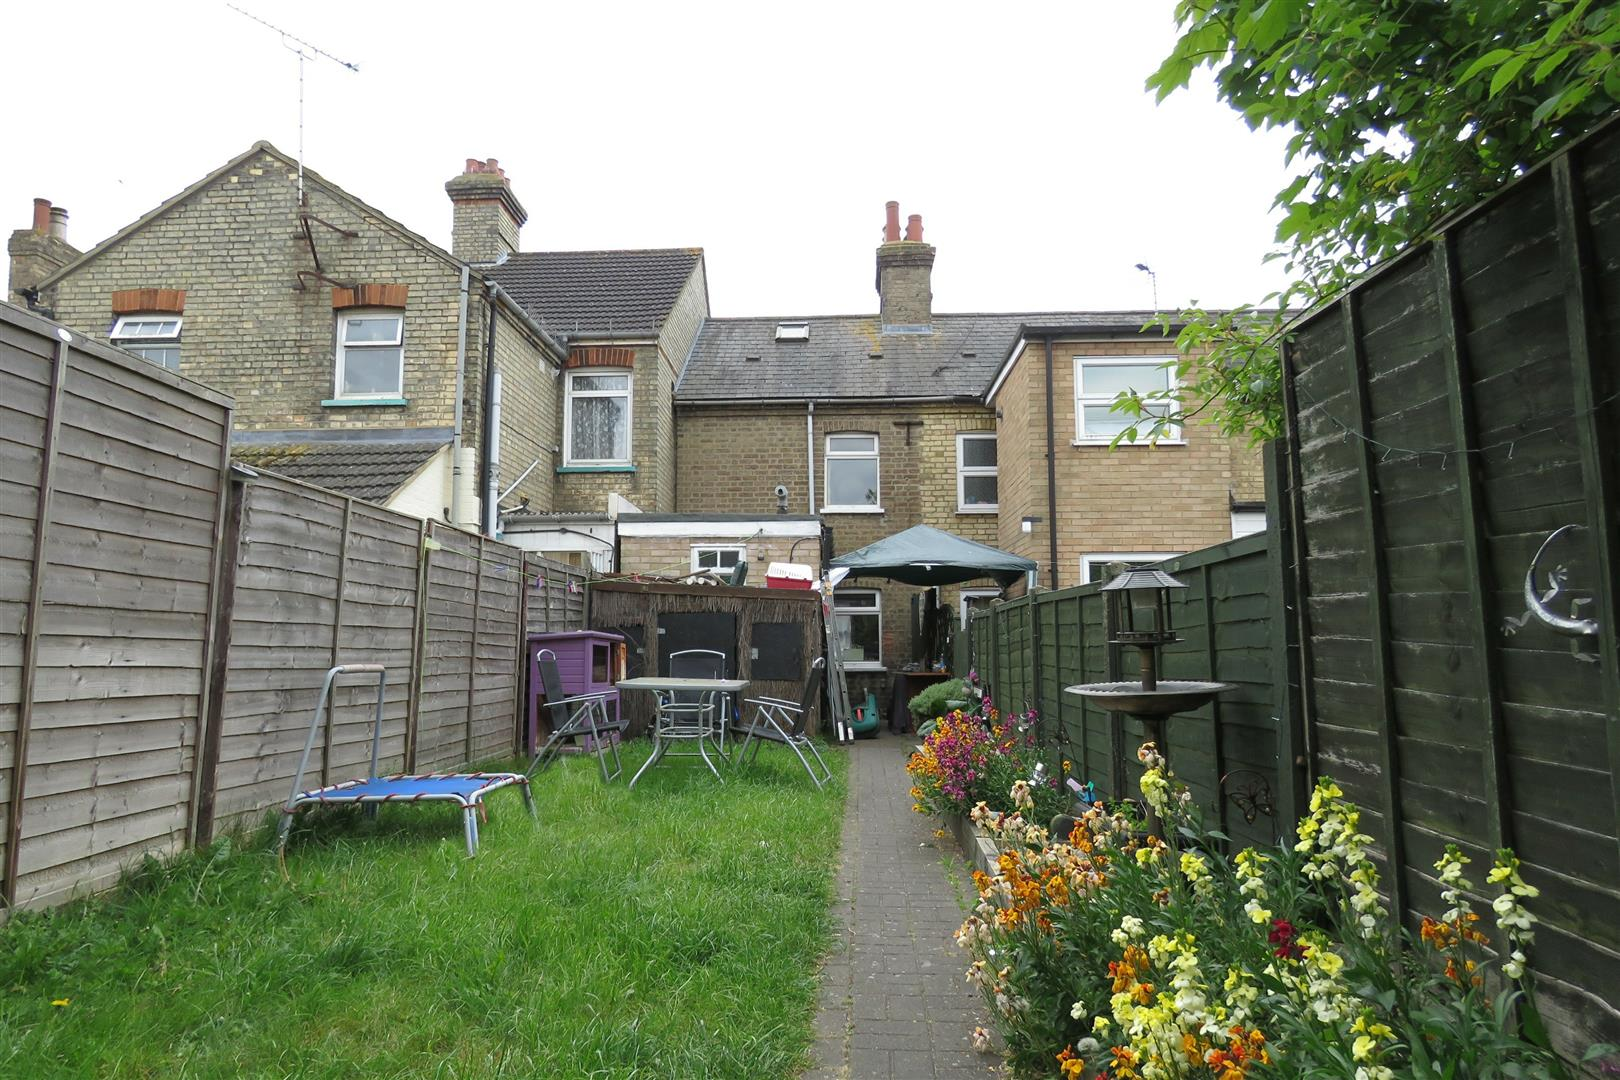 Property For Sale In Biggleswade